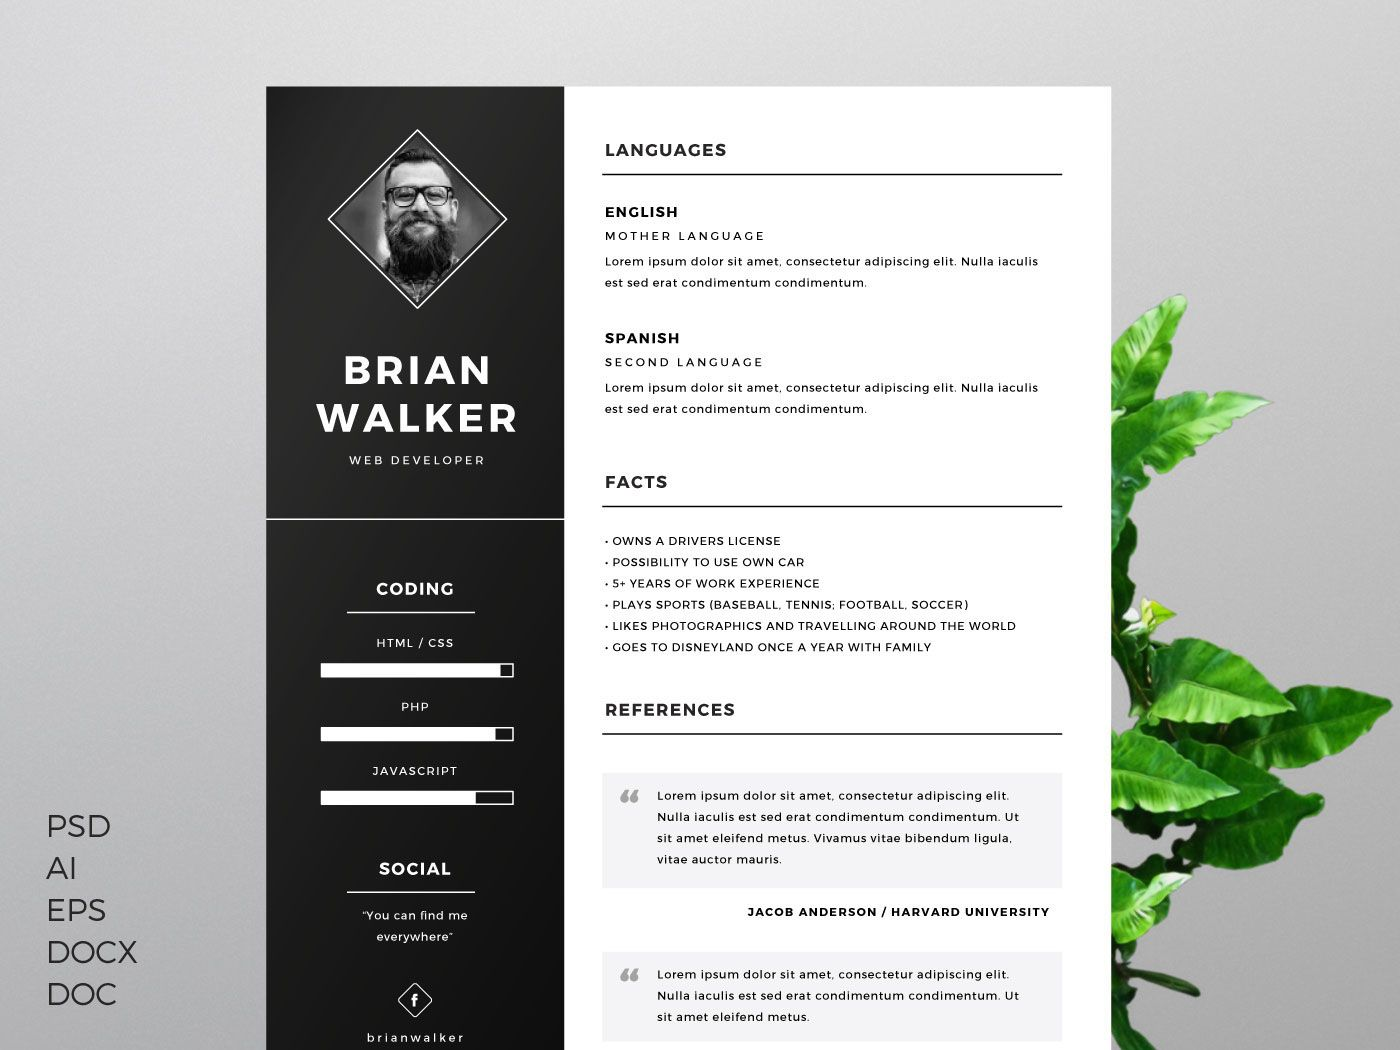 comment faire un beau cv quand on est graphiste ou designer cest cv resume templateresume templates for wordfree